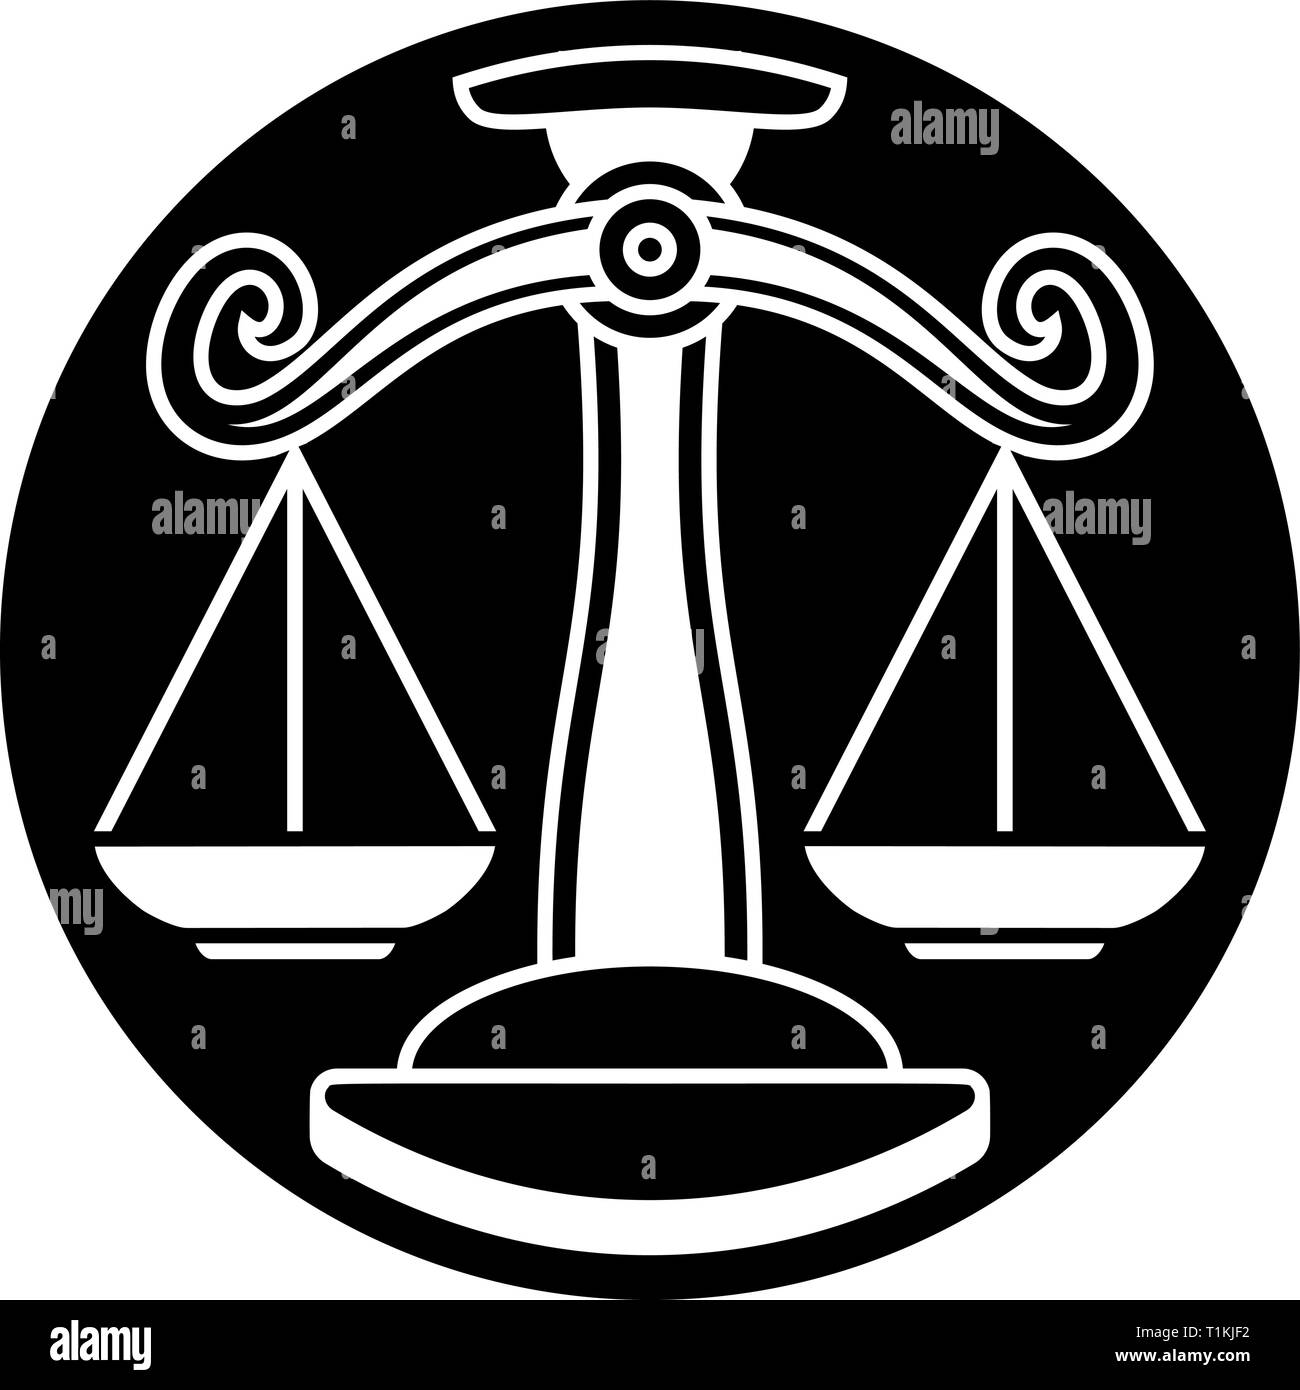 Libra Scales Zodiac Astrology Sign - Stock Image